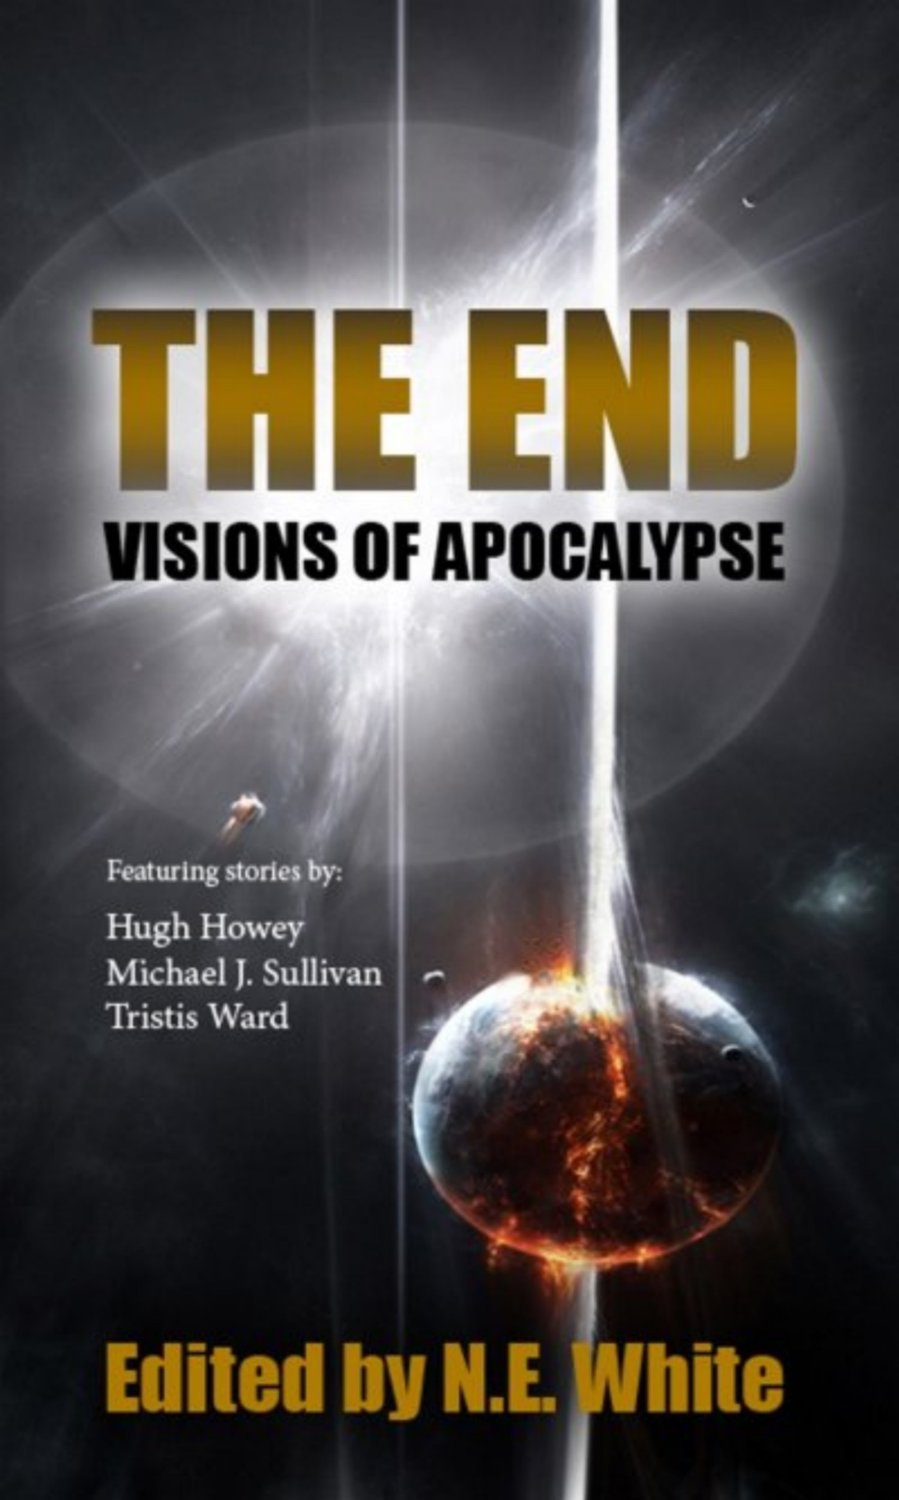 The End: Visions of Apocalypse